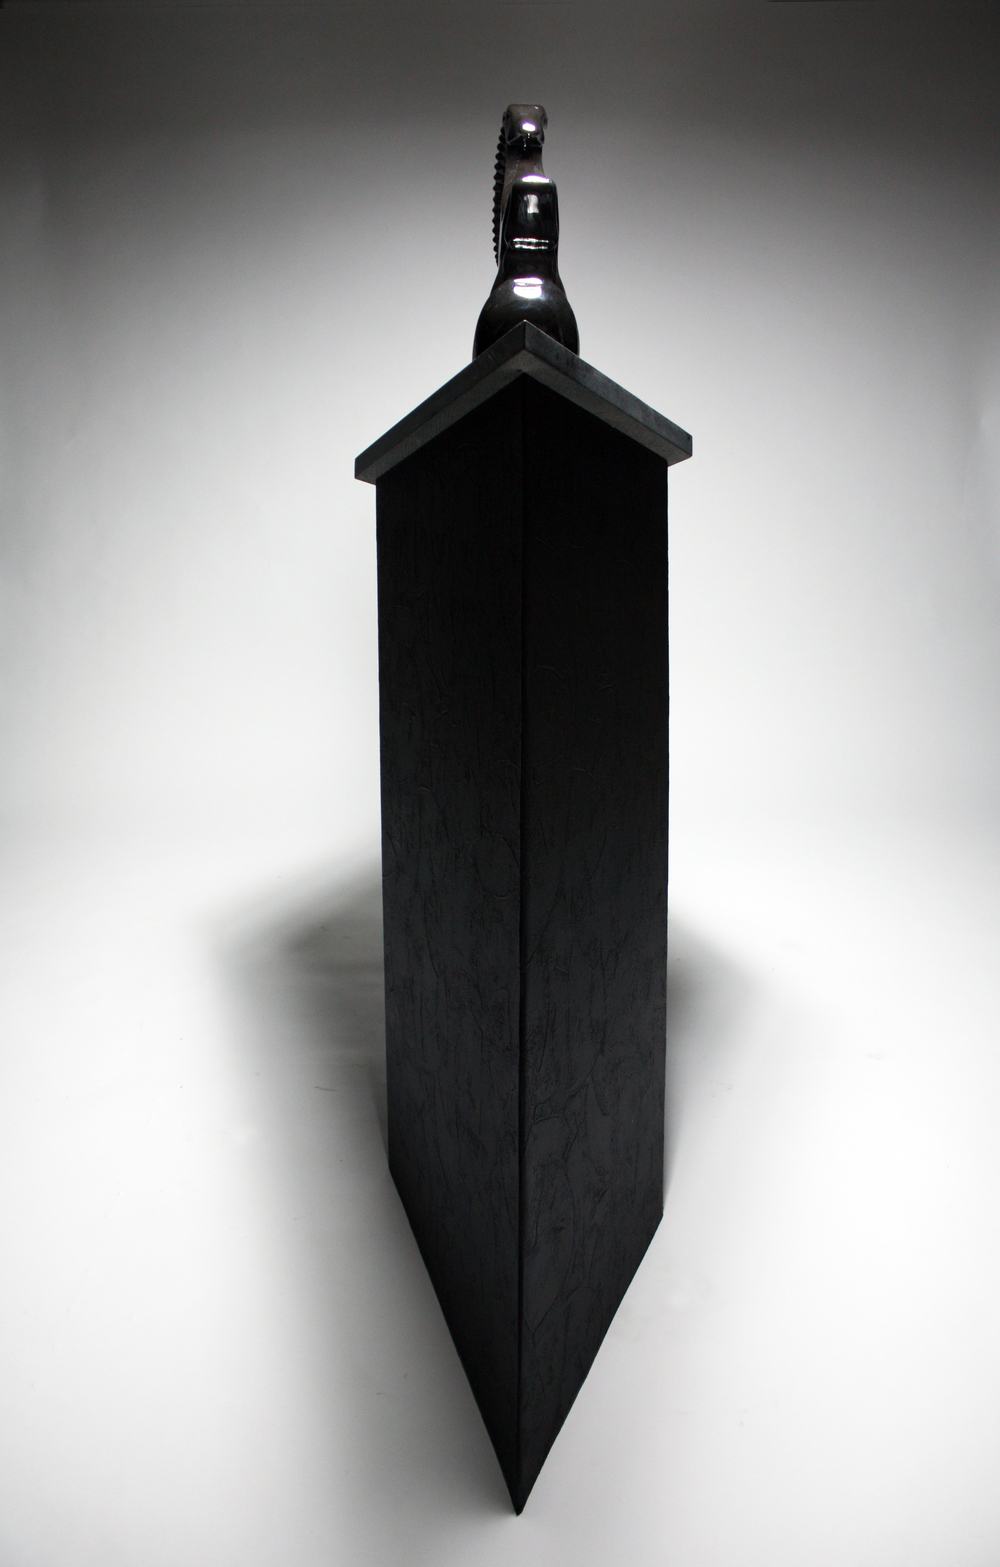 Black Thunder (alternate view), 2011